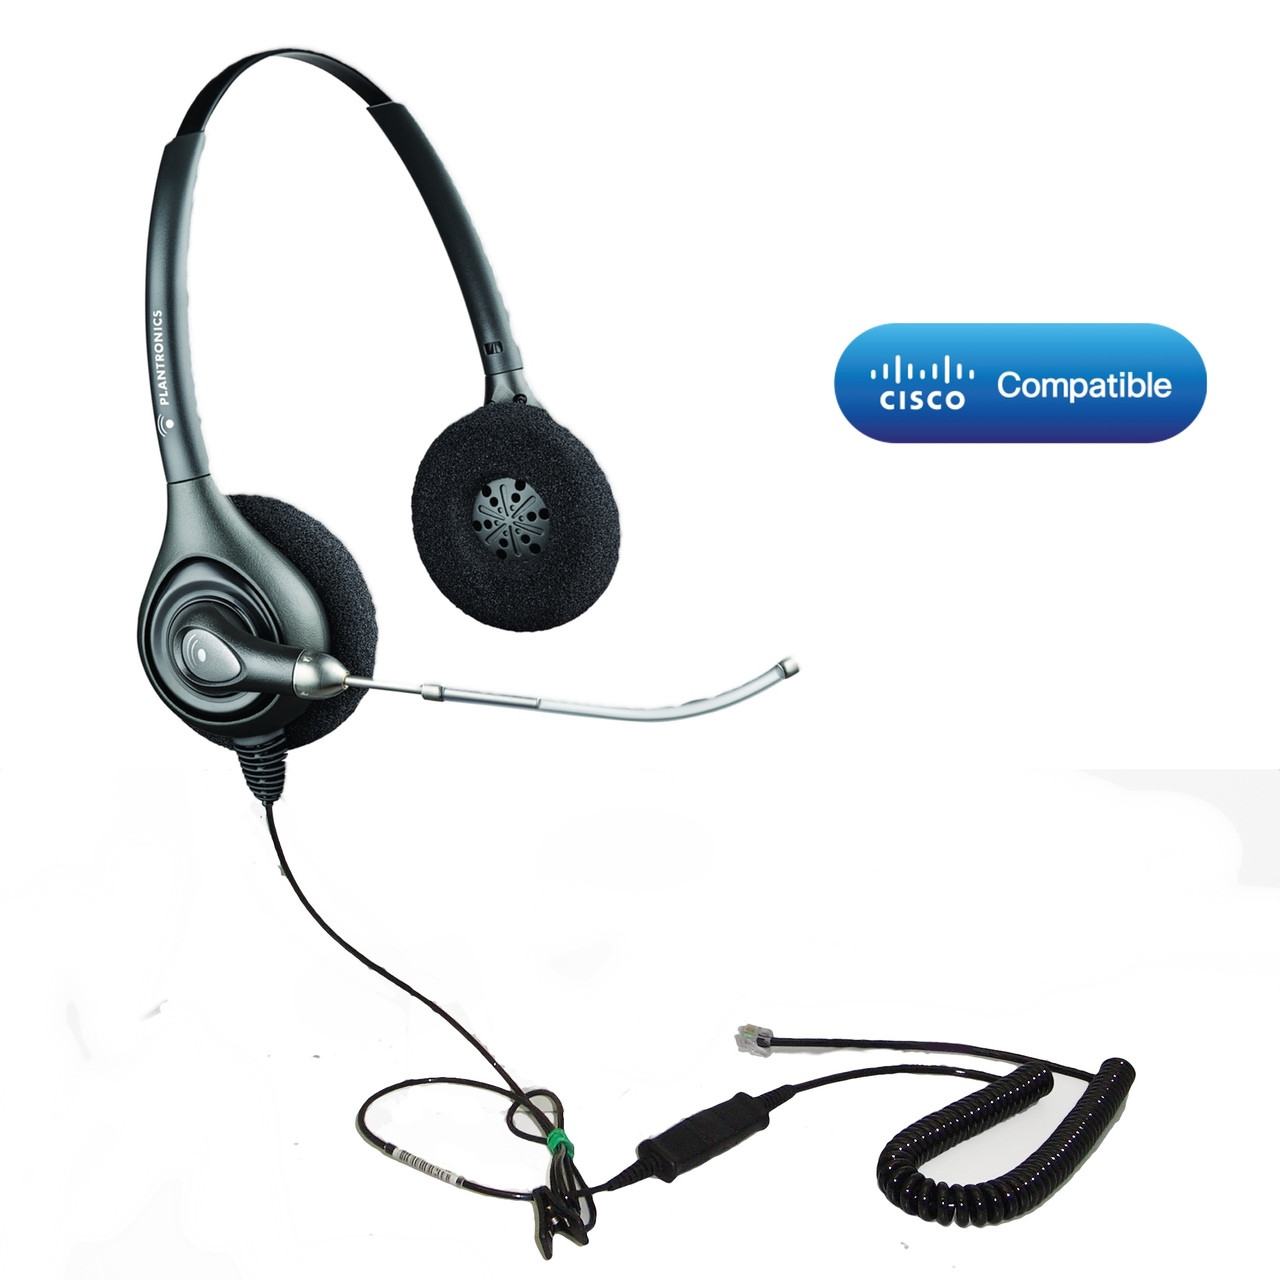 Cisco Certified Plantronics HW261 Voice-Tube Bundle | 64337-31-CIS | For  Cisco IP Phones: 6921, 6941, 6945, 6961, 7821, 7841, 7861, 7932g, 7931,